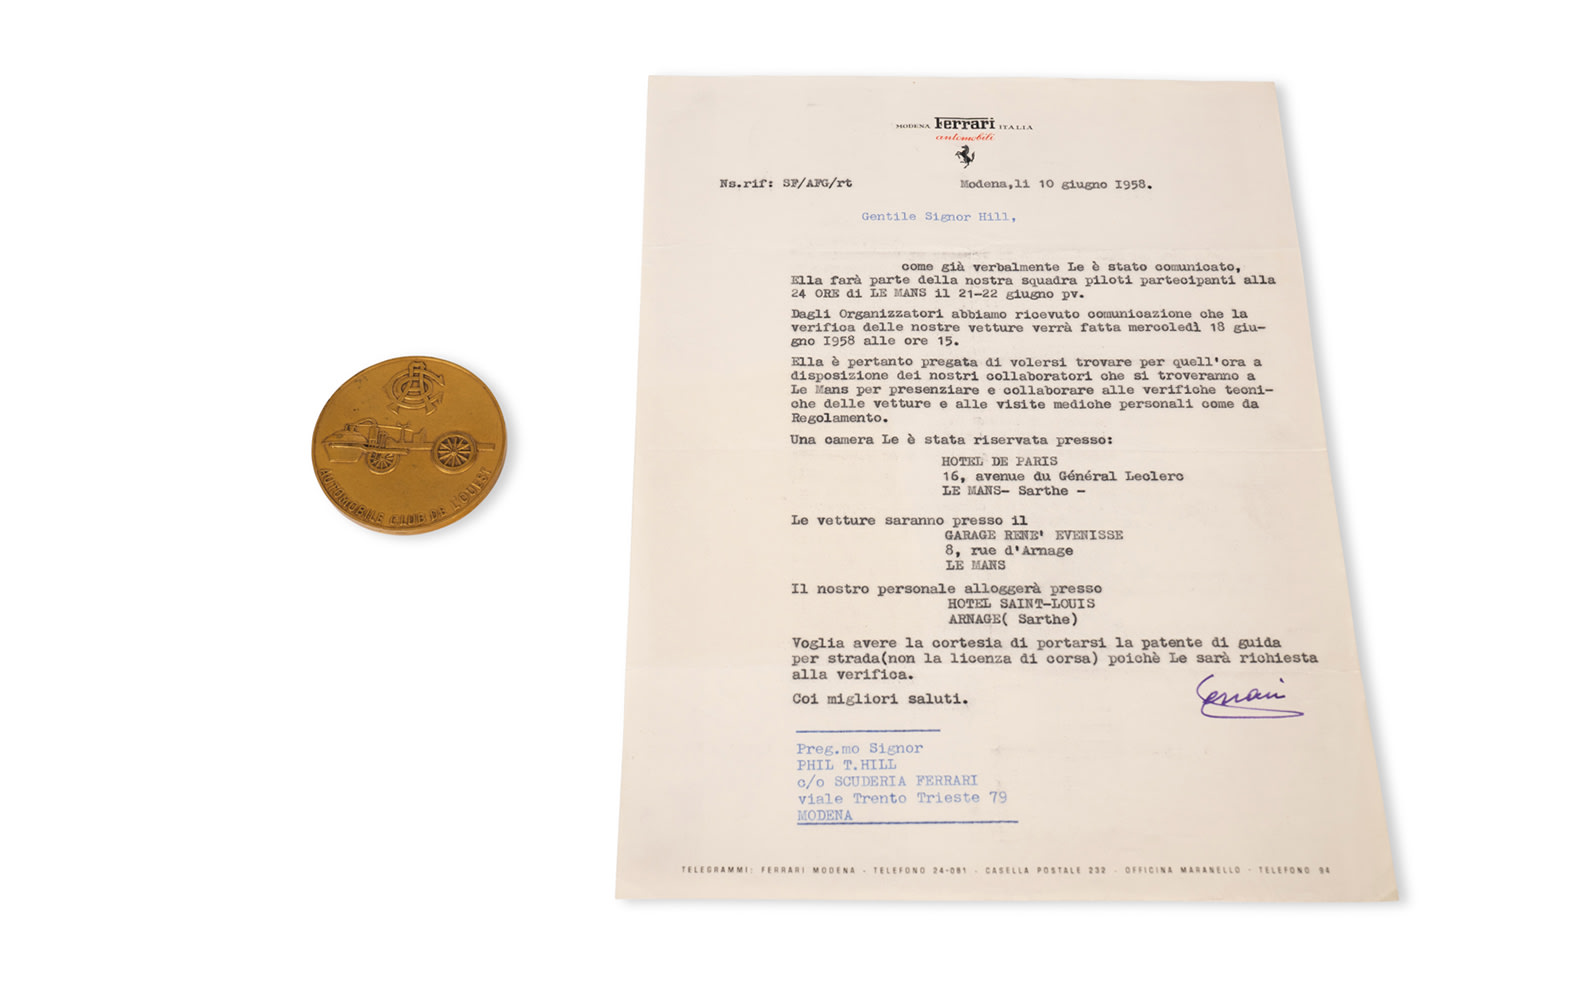 1958 24 Hours of Le Mans Pilote Coin and Signed Letter from Enzo Ferrari to Phil Hill, Dated June 10, 1958